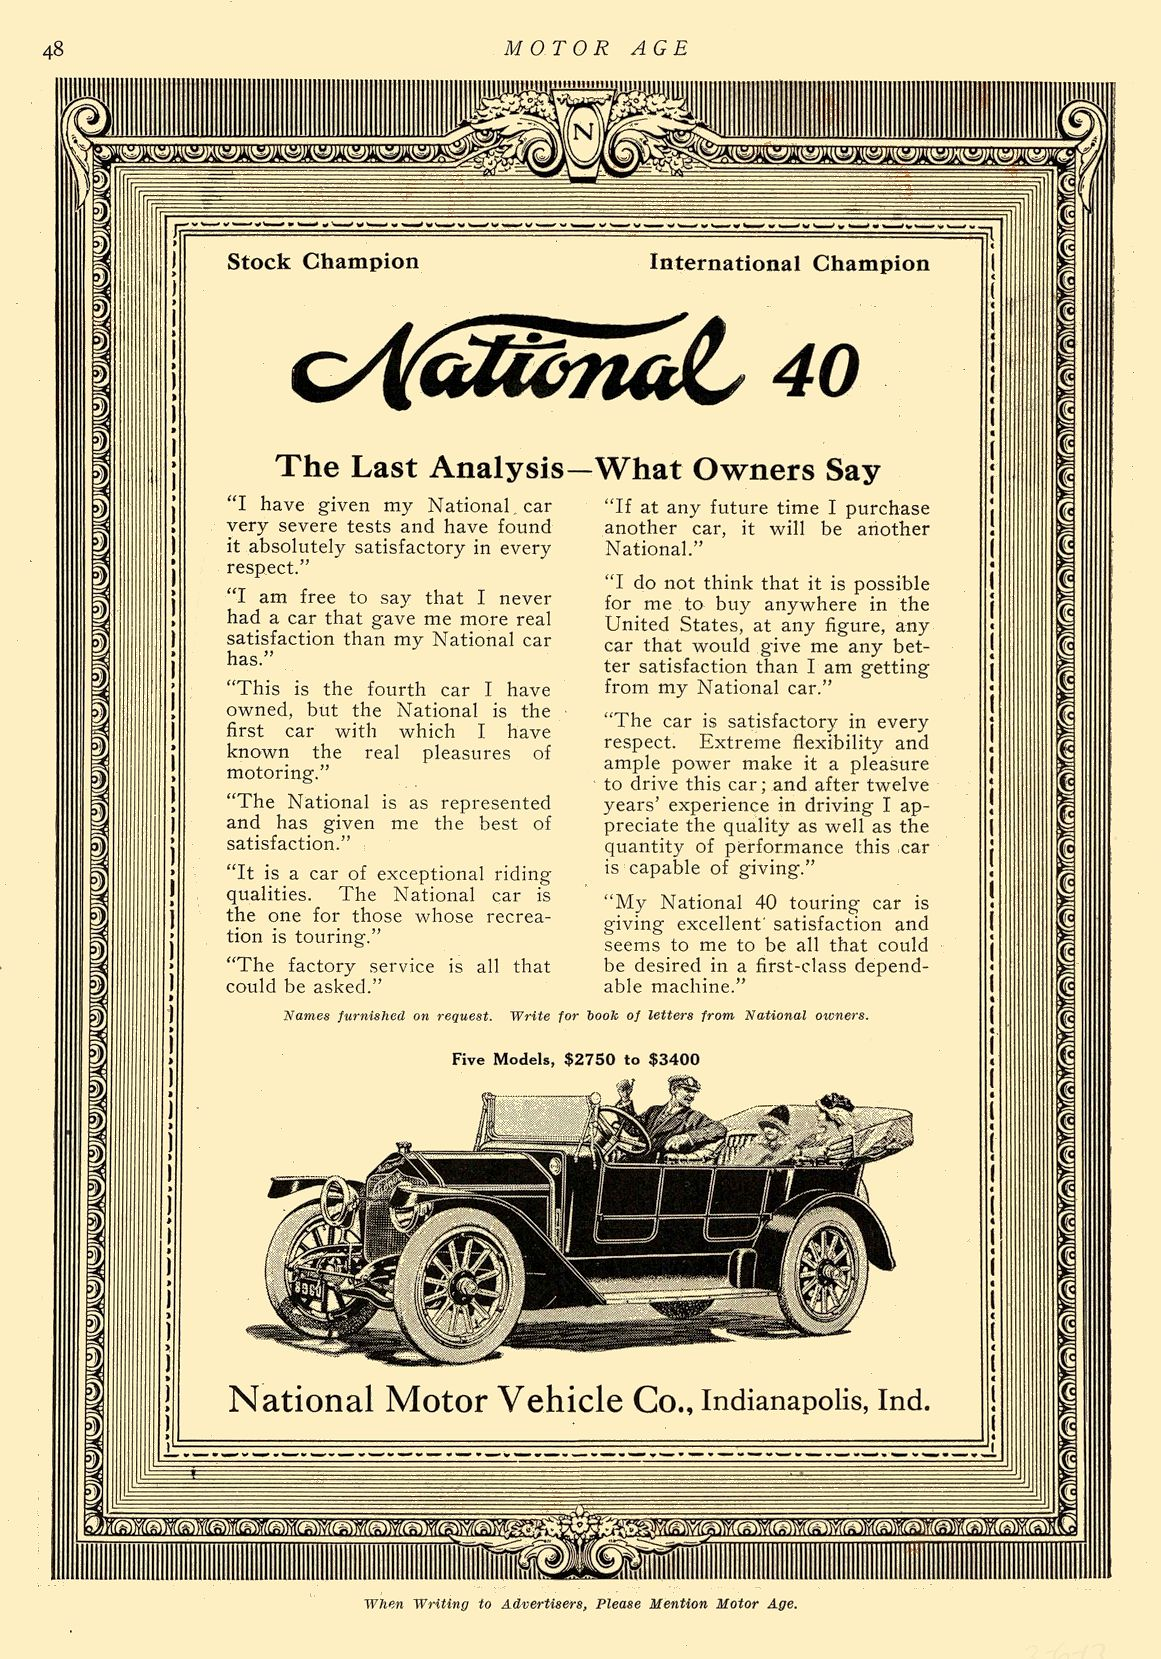 1913 3 6 NATIONAL National 40 The Last Analysis—What Owners Say National Motor Vehicle Co. Indianapolis, IND MOTOR AGE March 6, 1913 8.5″x12″ page 48